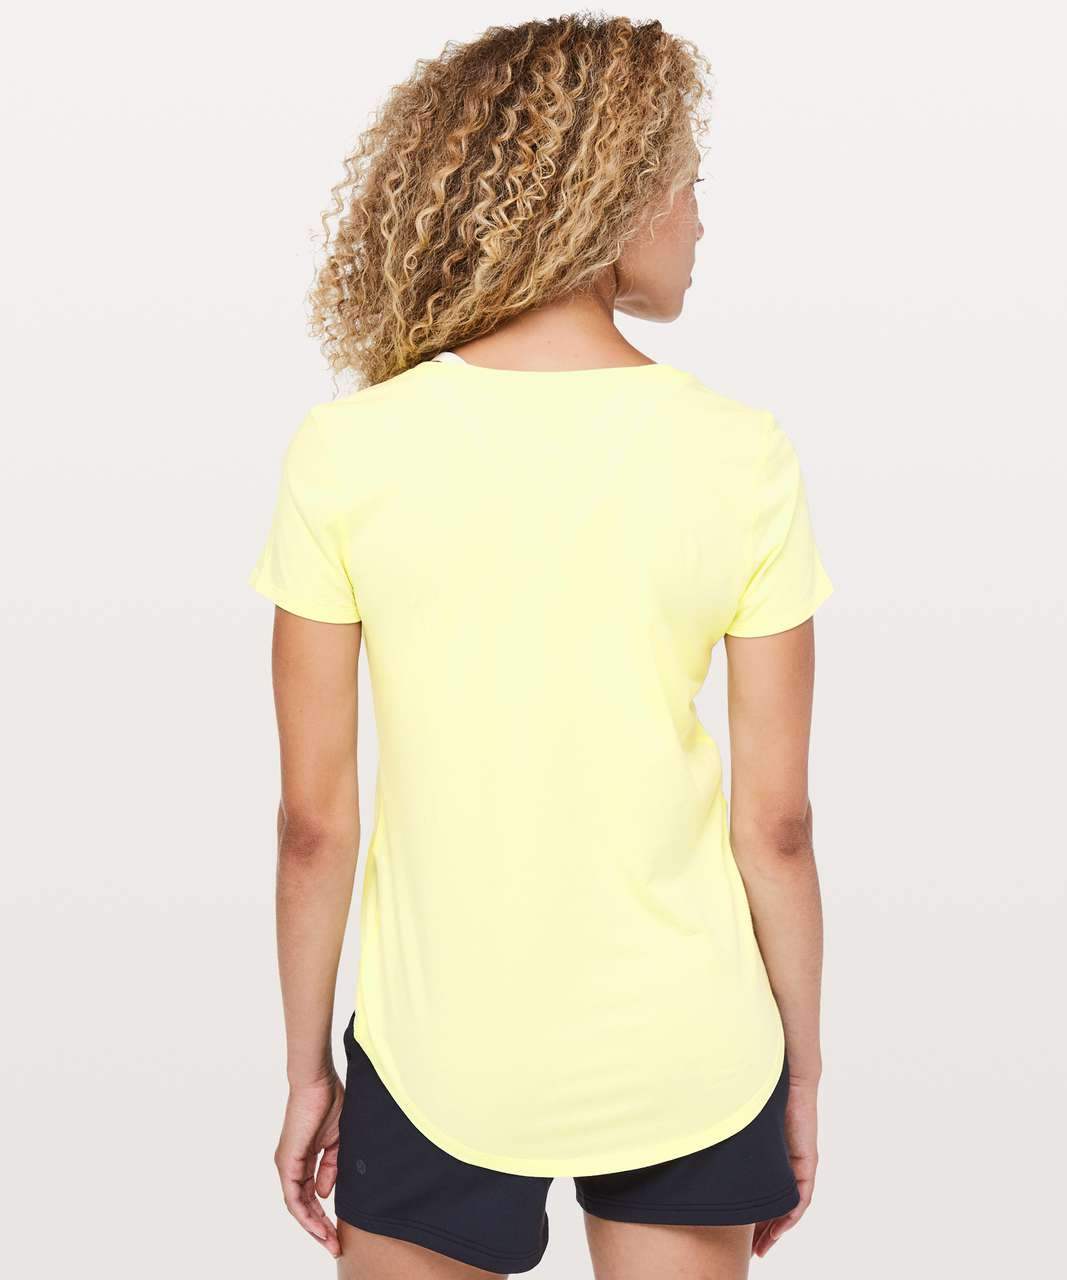 Lululemon Love Tee V - Lemon Ice